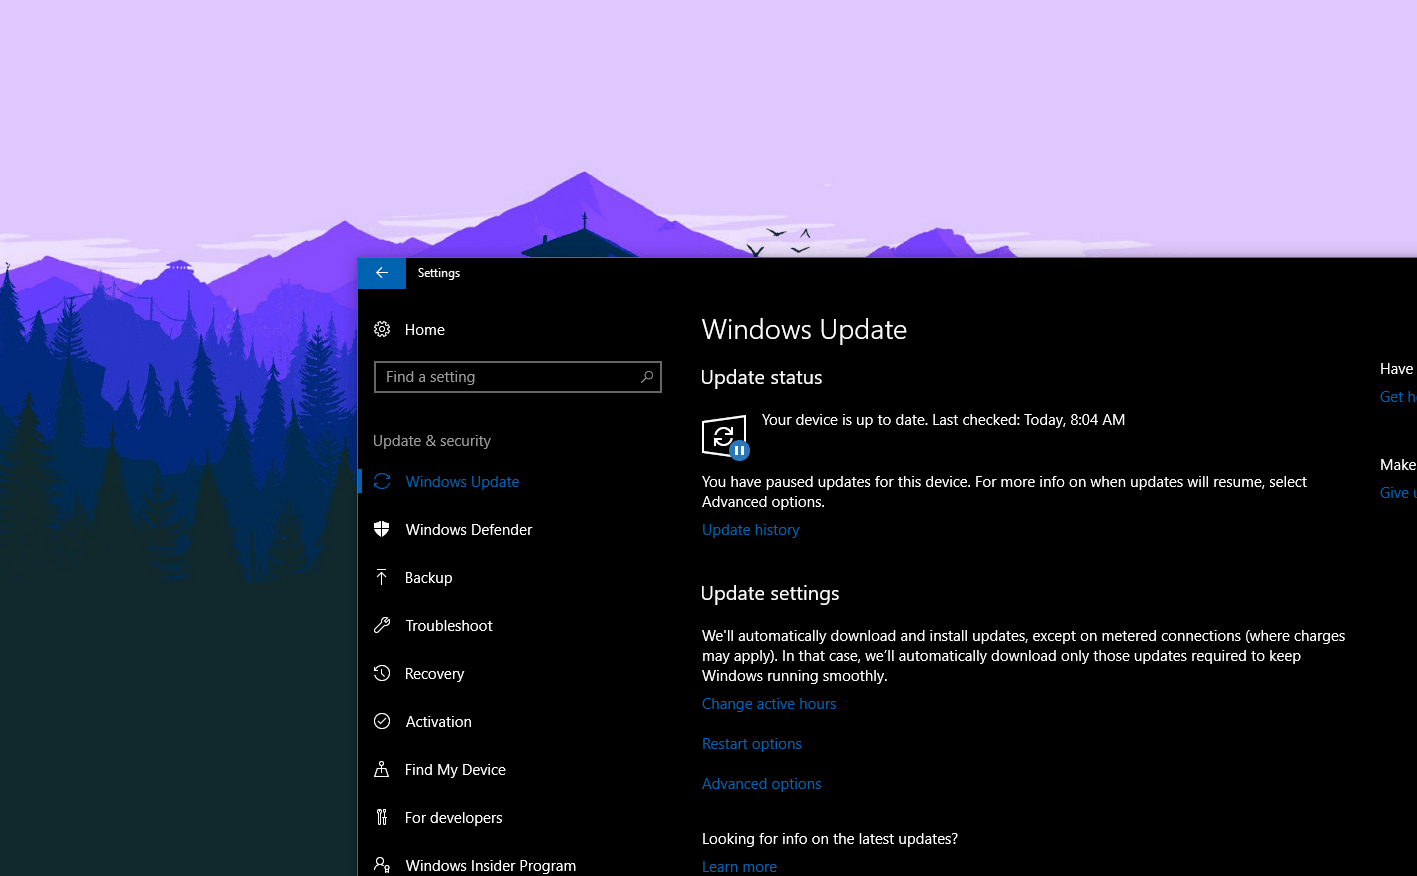 Microsoft is investigating issues associated with KB4556799 cumulative update 19